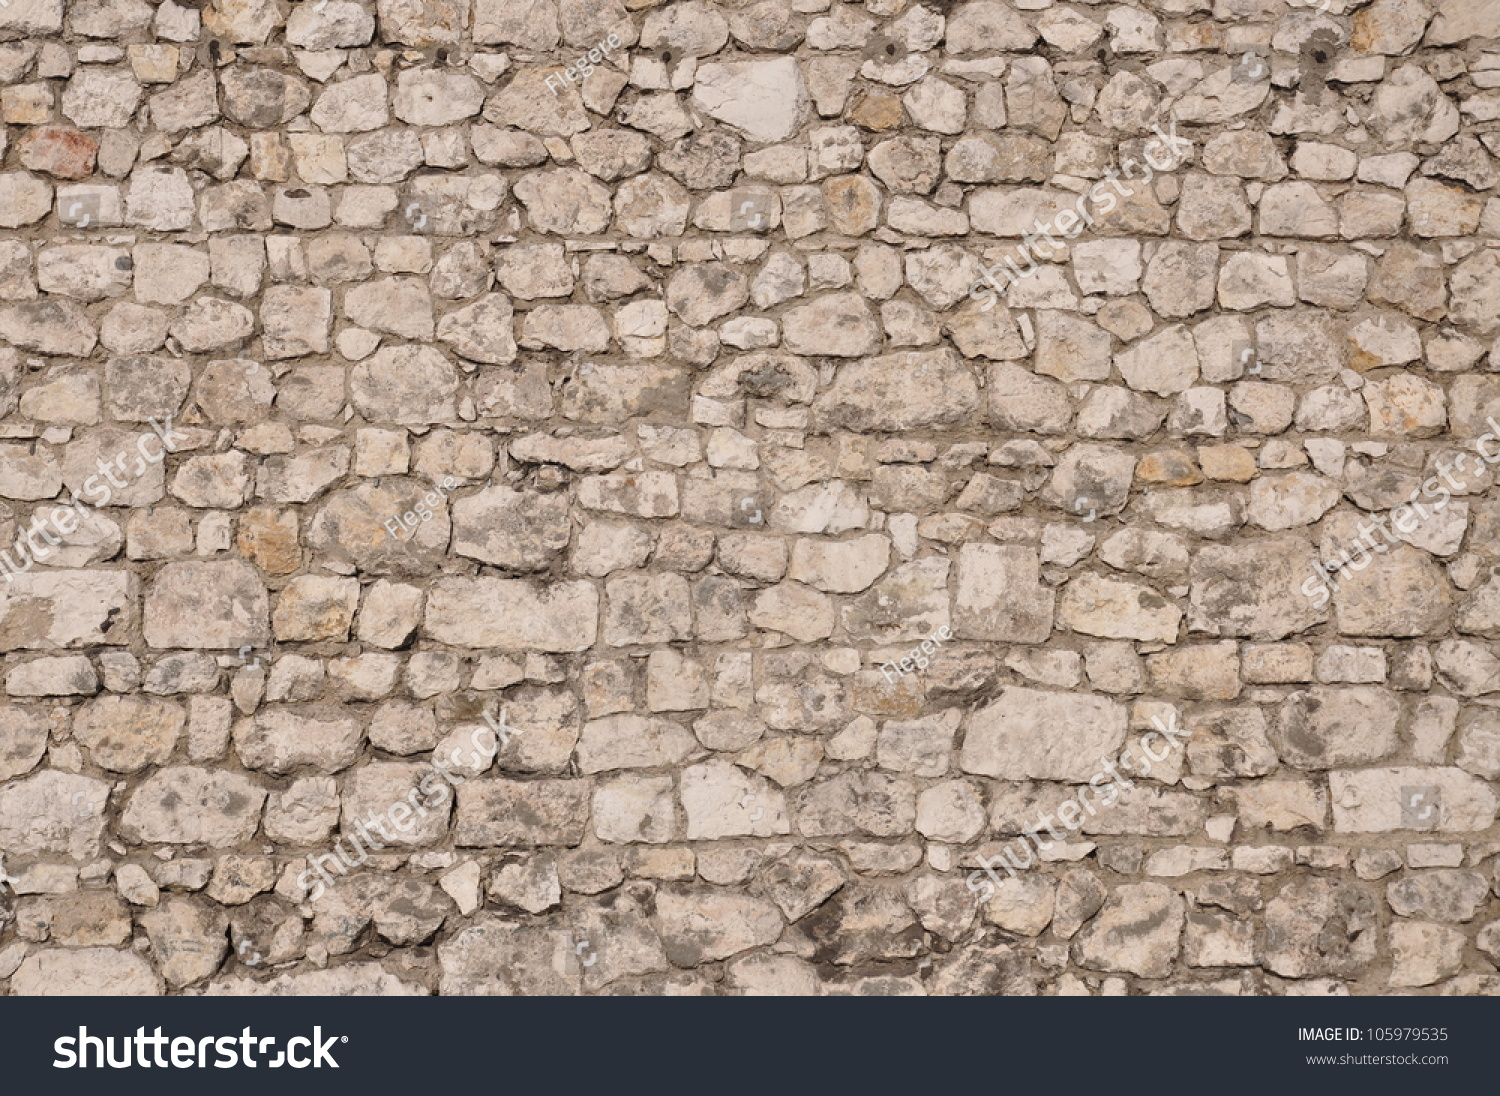 Natural Limestone Walls : Stone wall protection natural limestone as a background